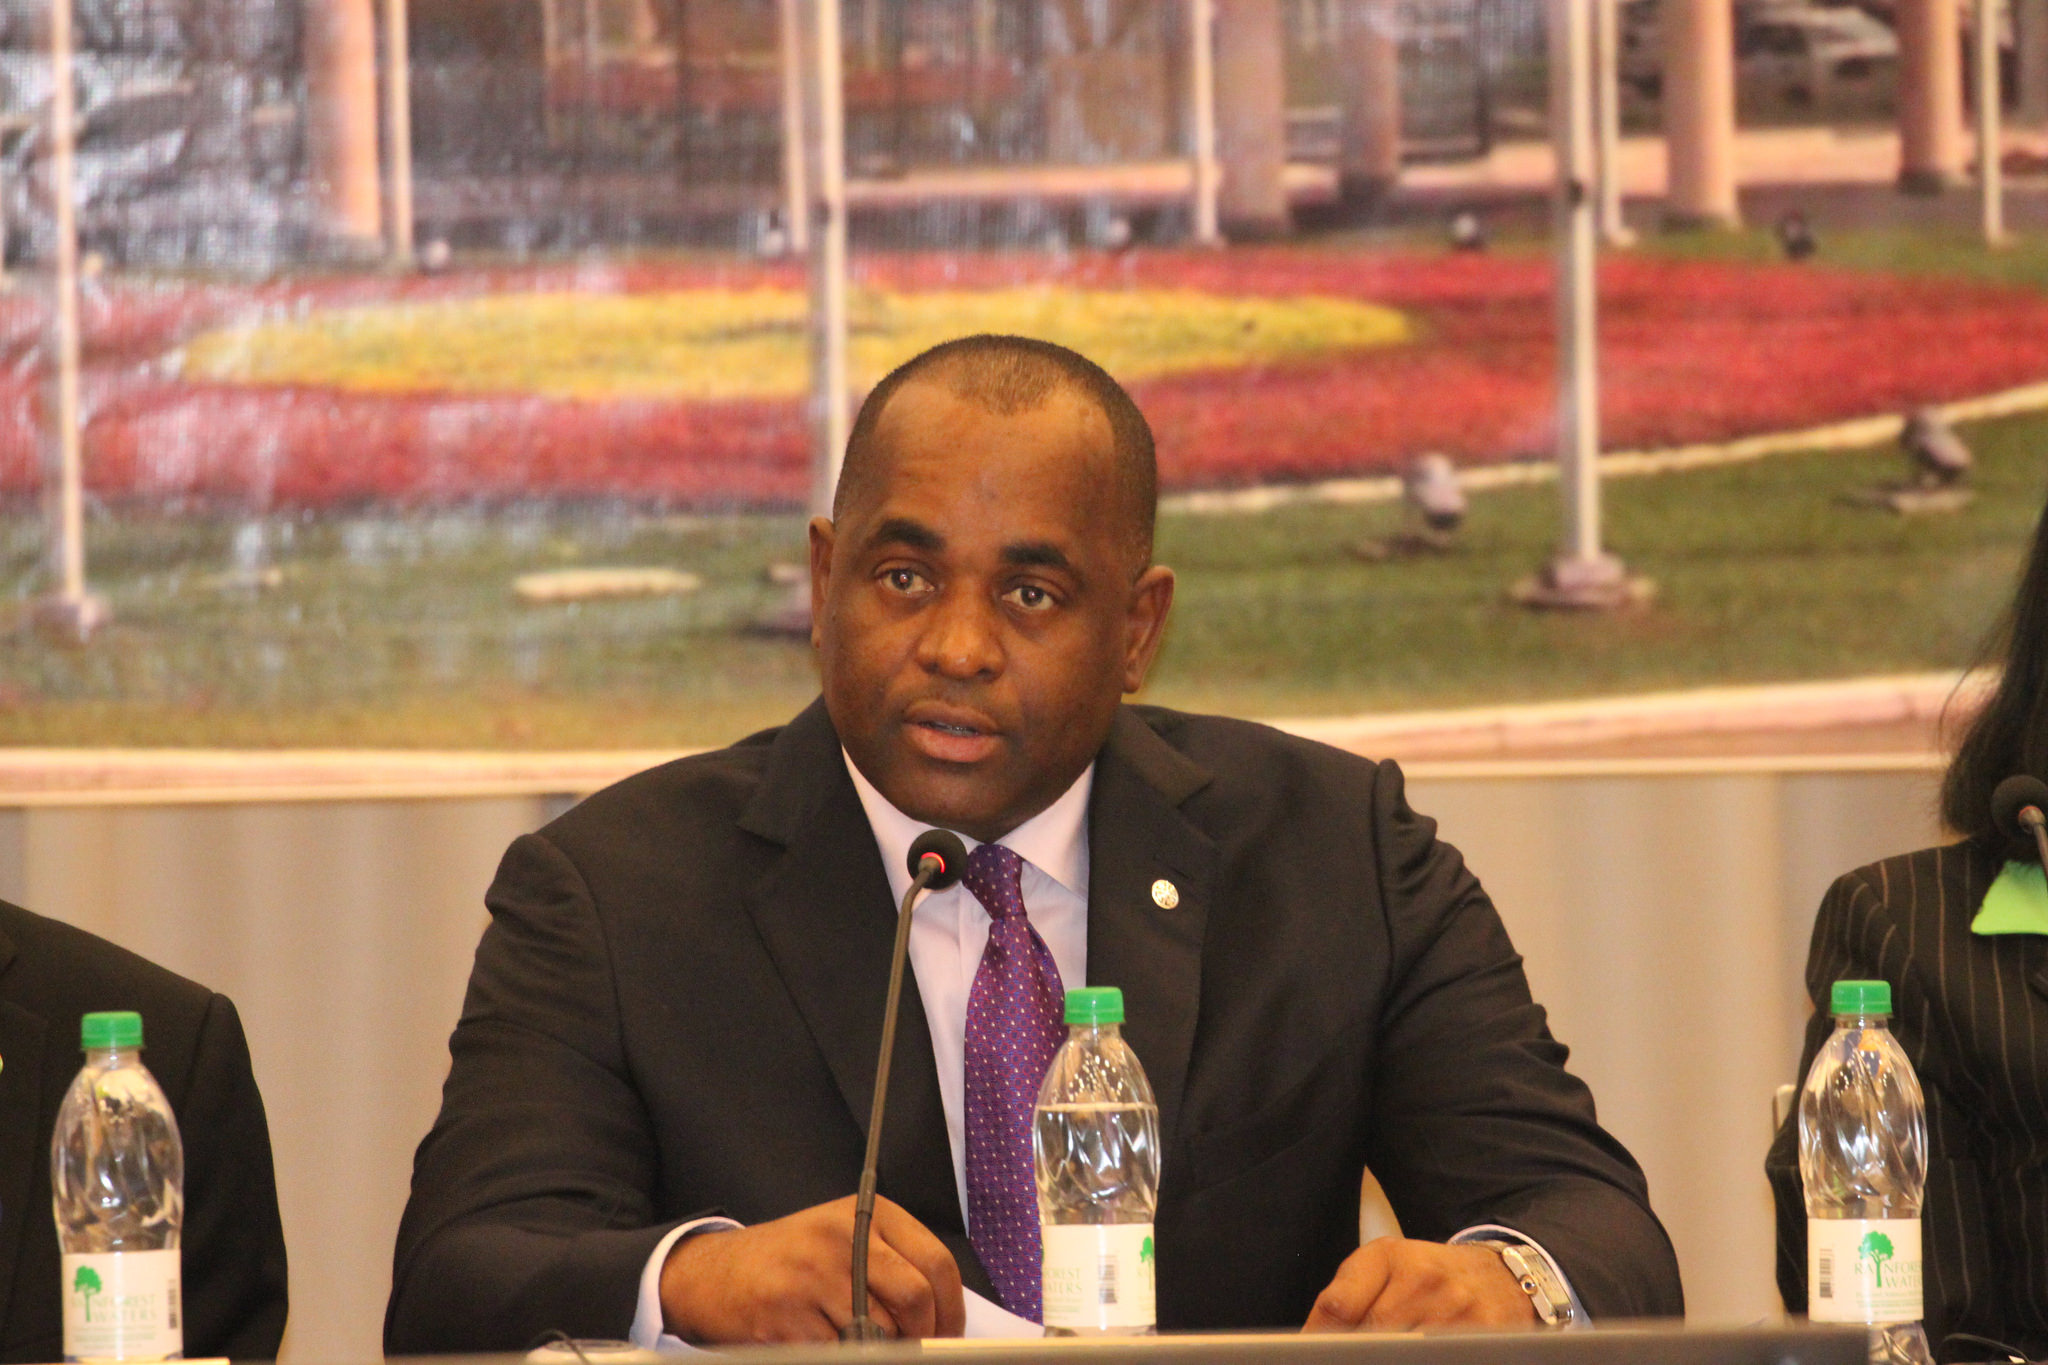 Outgoing CARICOM Chairman, Prime Minister Roosevelt Skerrit of Dominica addresses the Opening Ceremony of the 28th CARICOM Inter-Sessional meeting, in Georgetown